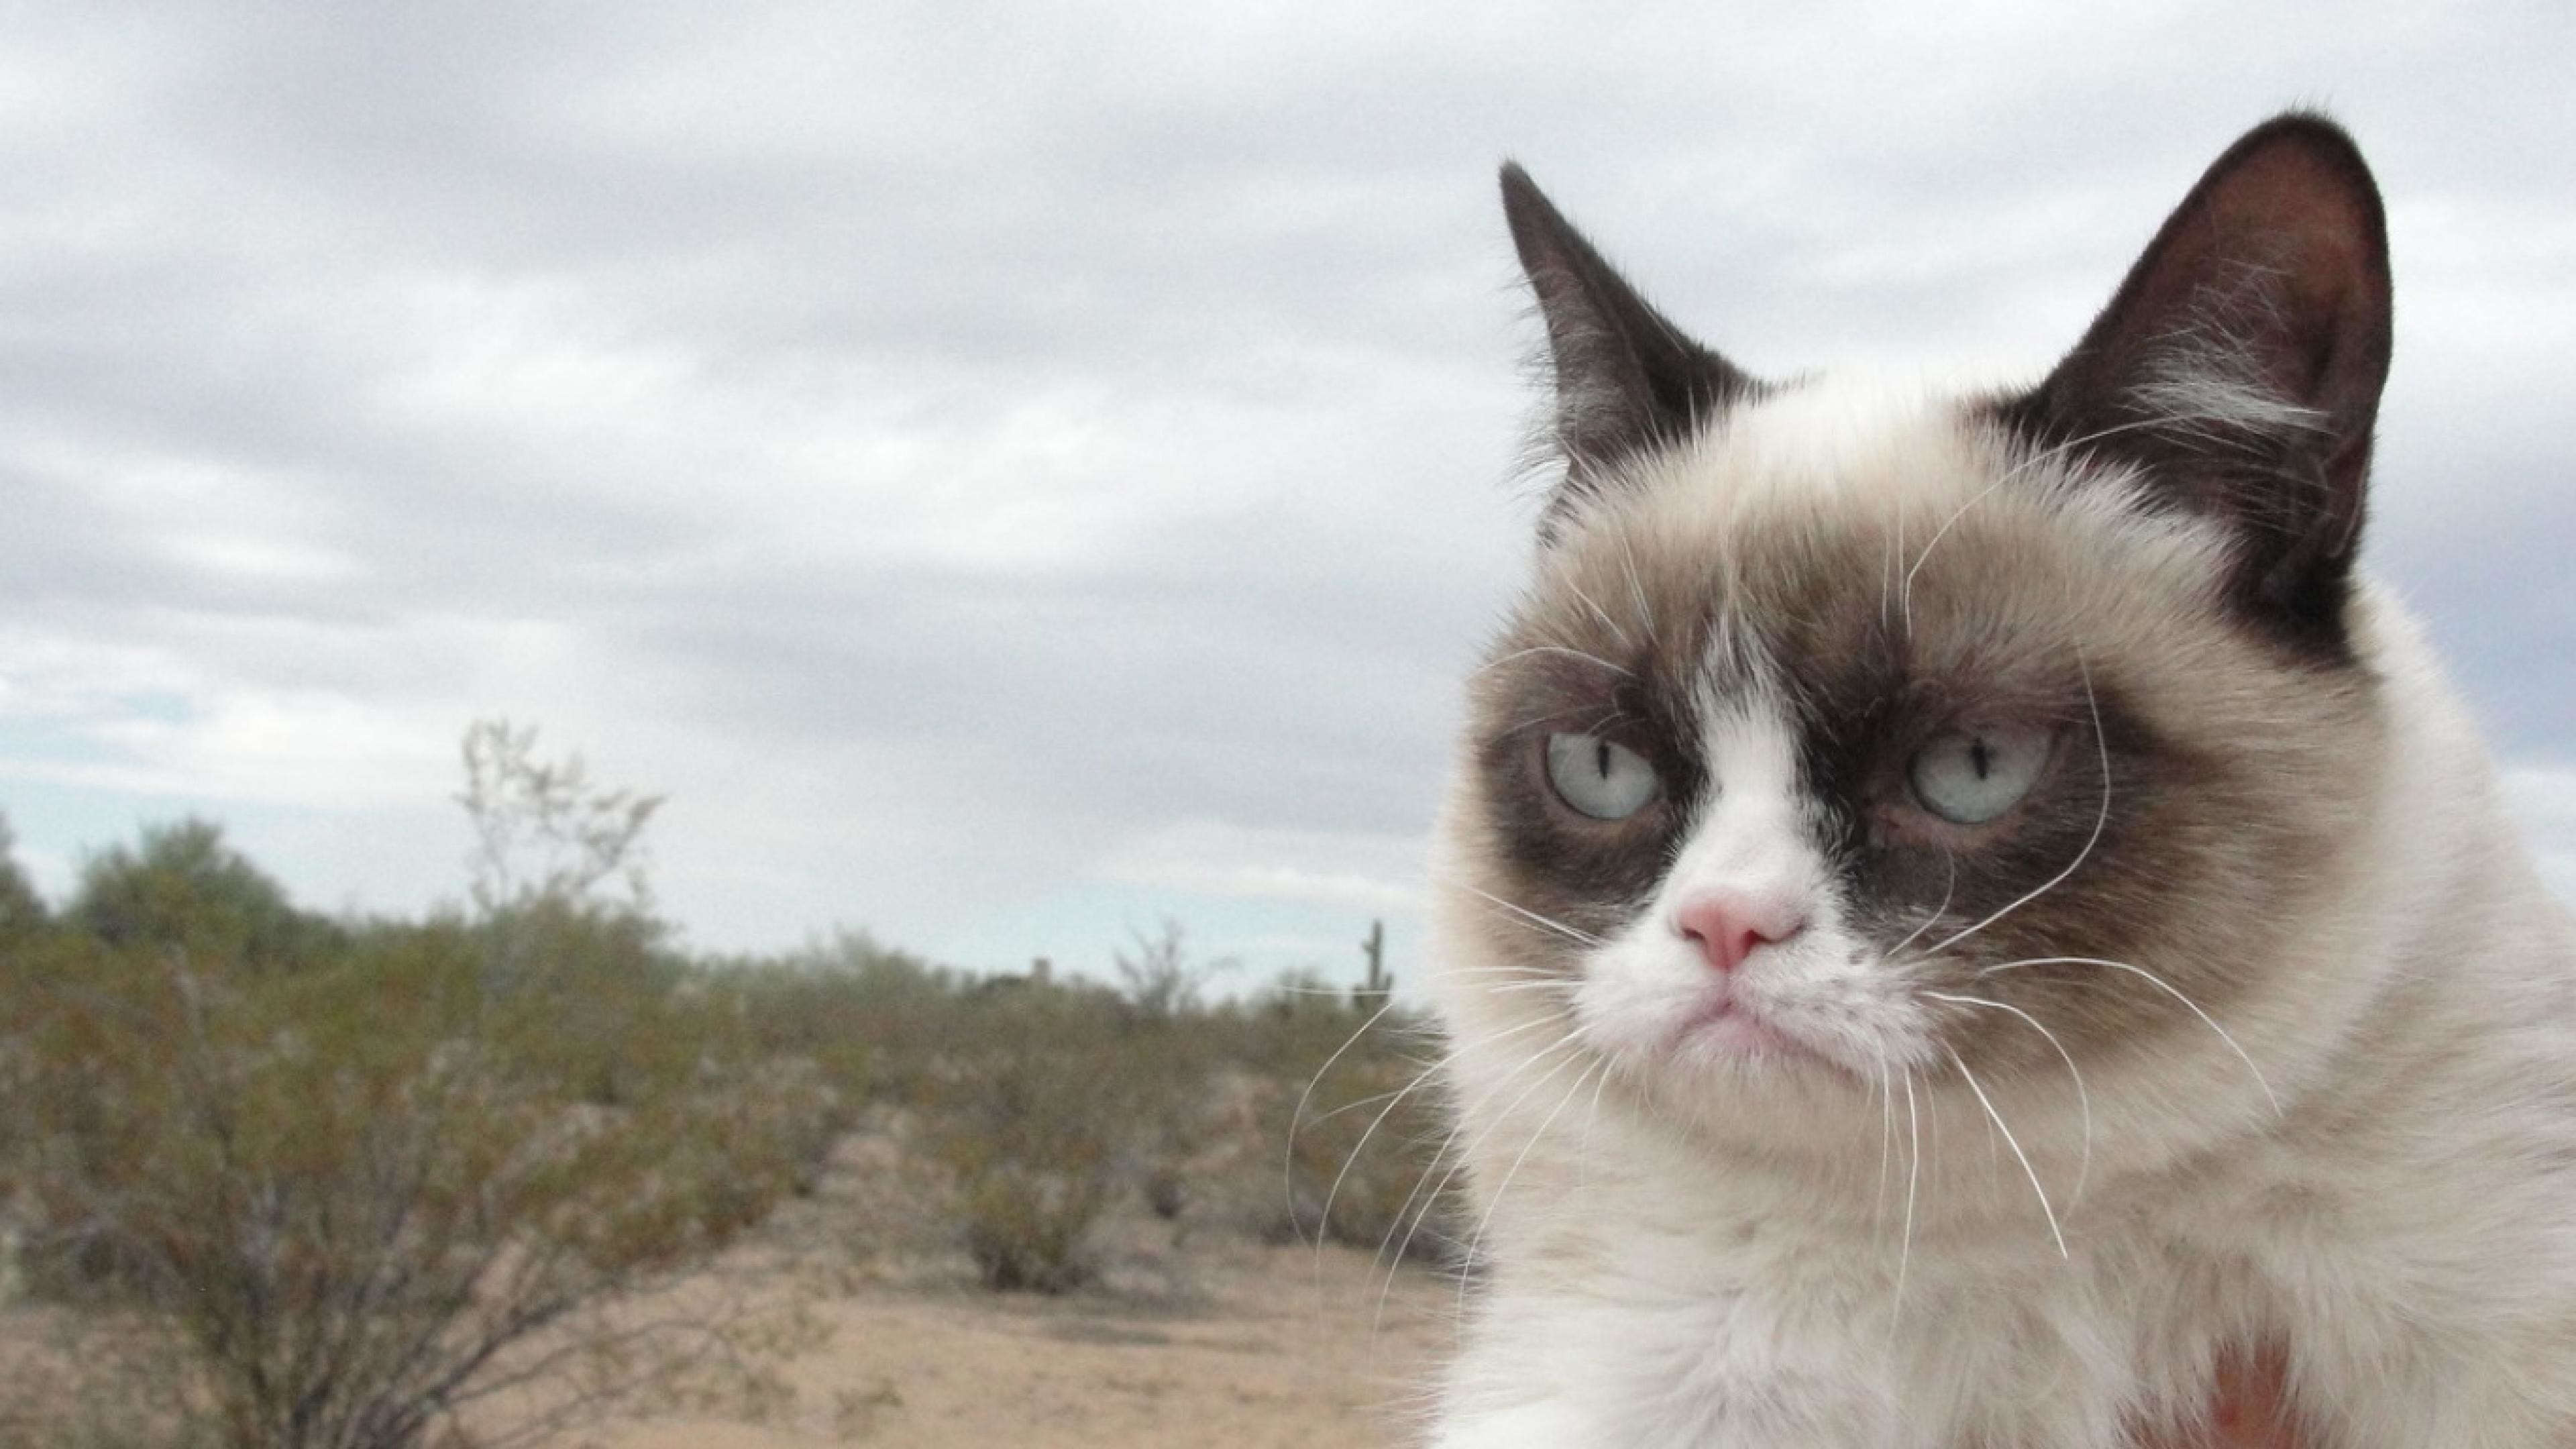 3840x2160 Filename: wp1838209.jpg · view image. Found on: grumpy-cat-wallpapers